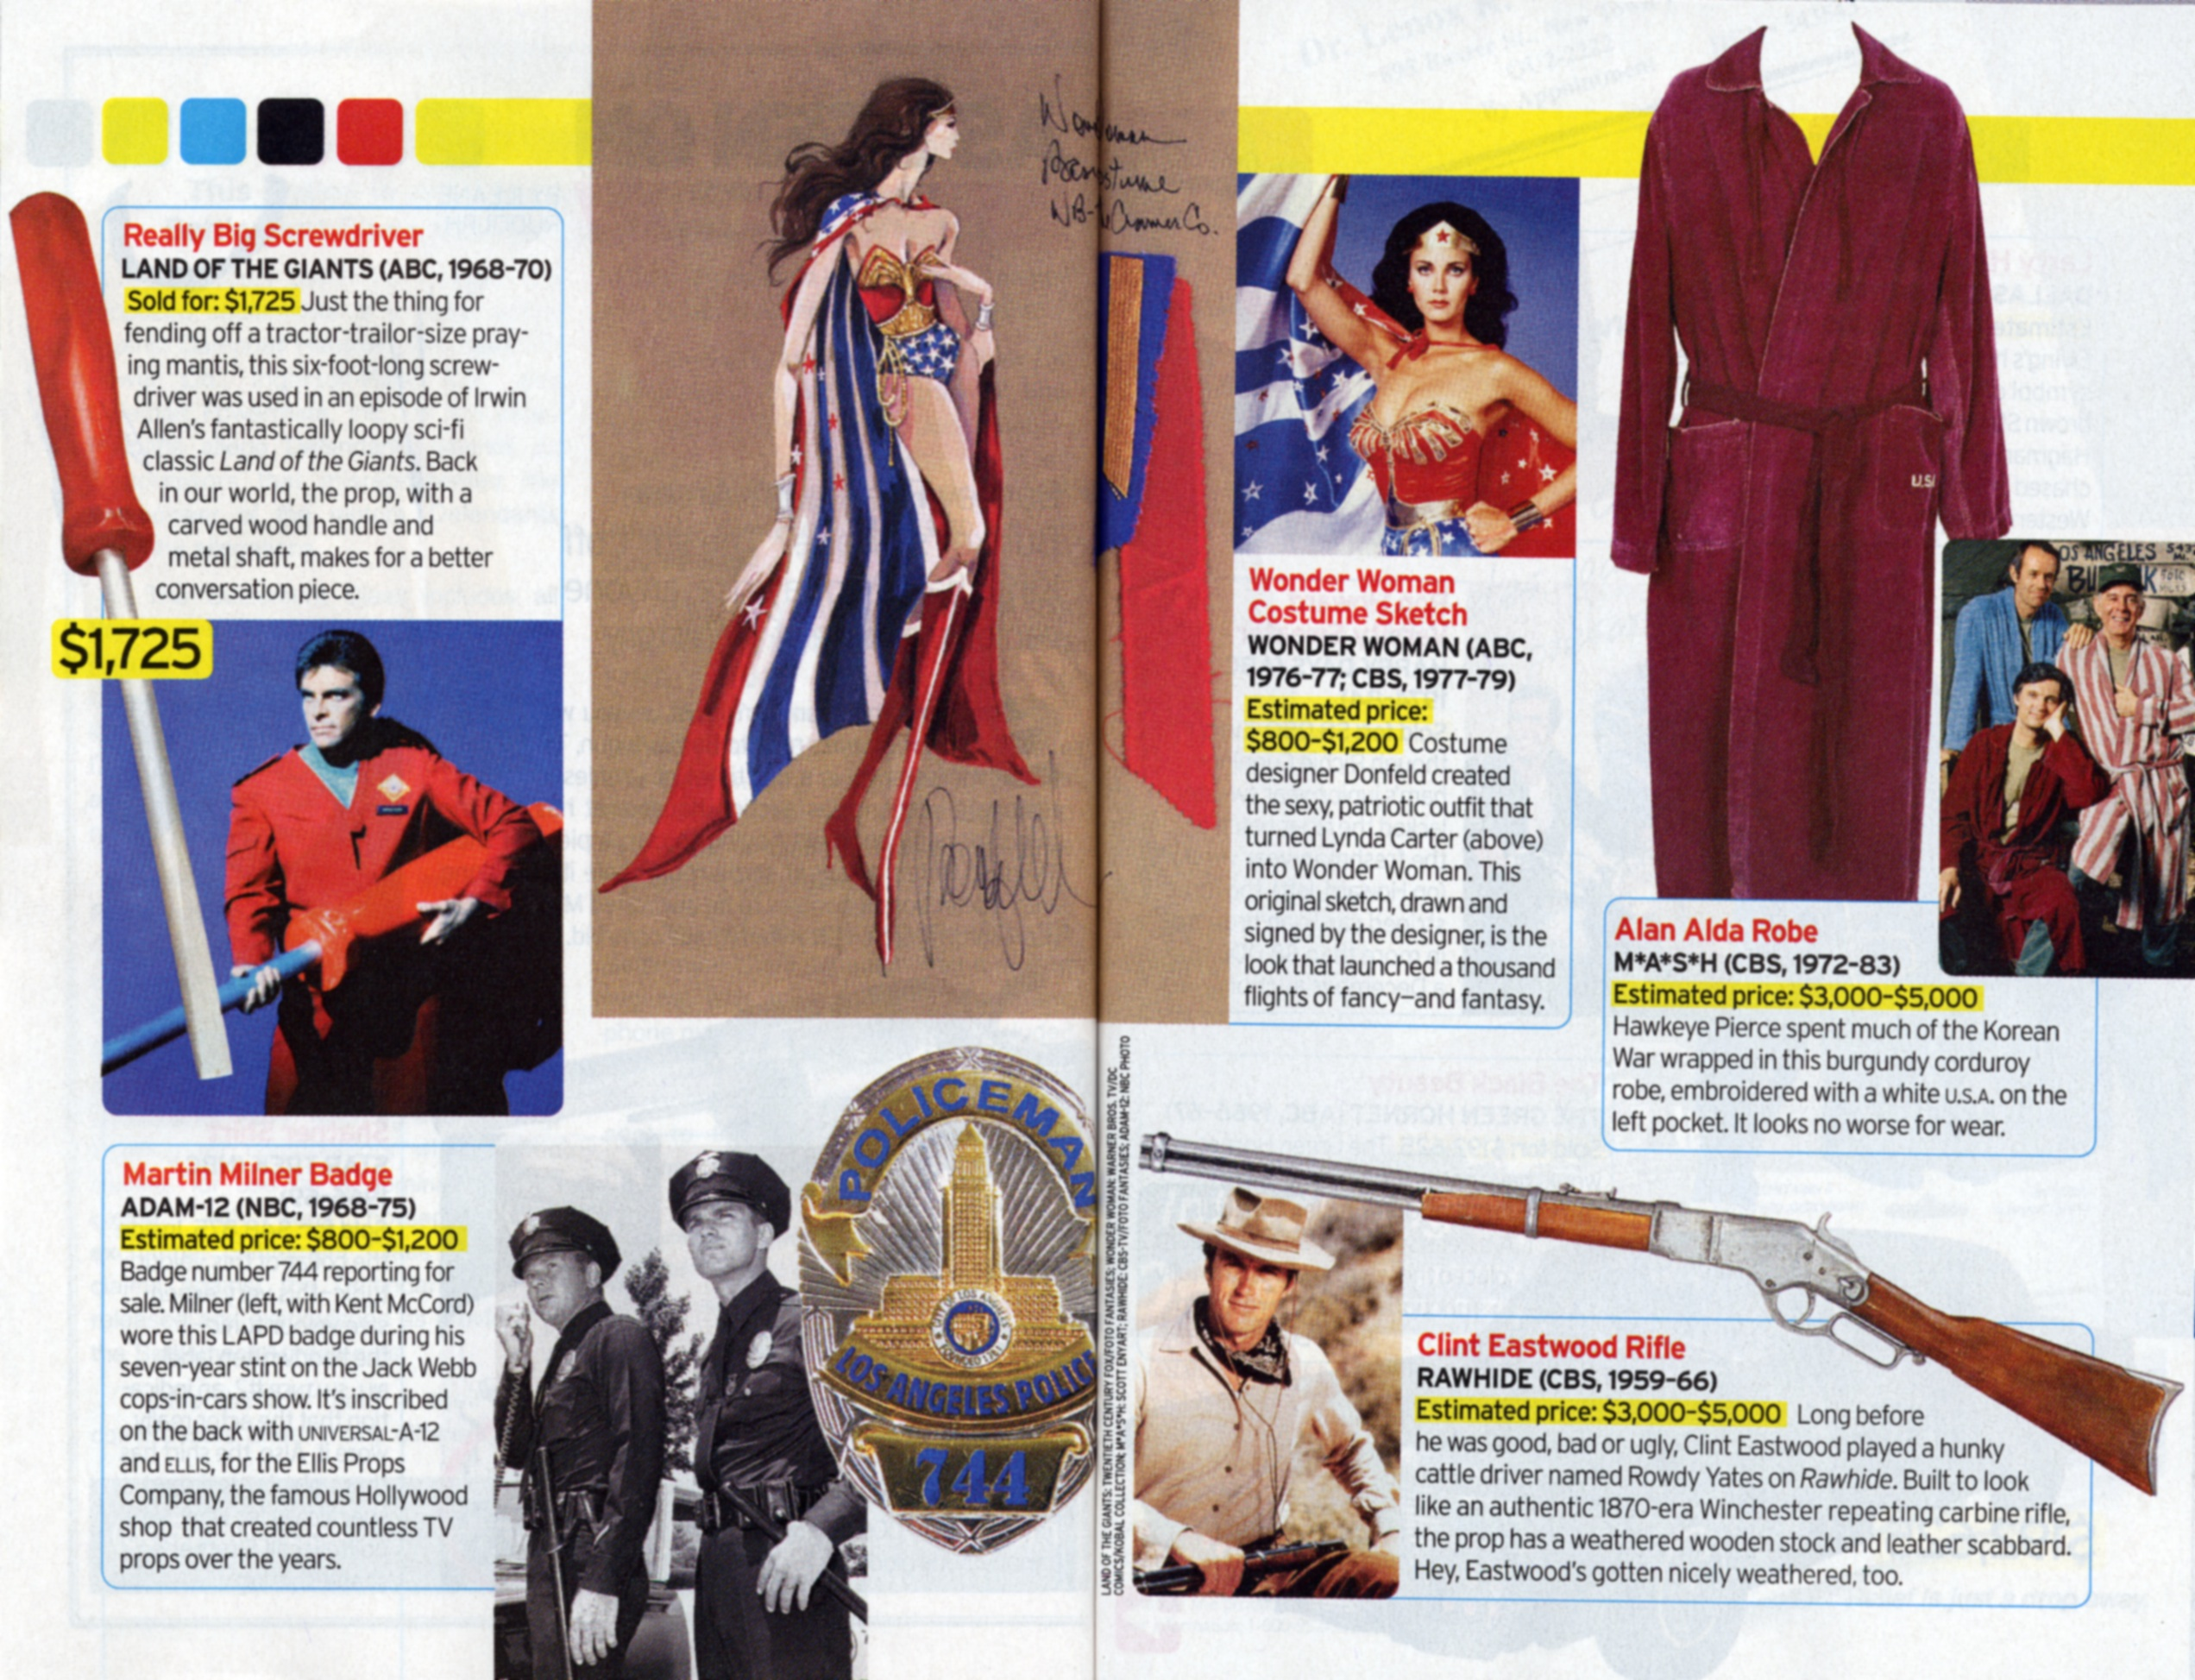 TV Guide article about Land of the Giants big screwdriver, wonder women's costume sketch, Clint Eastwood's rifle